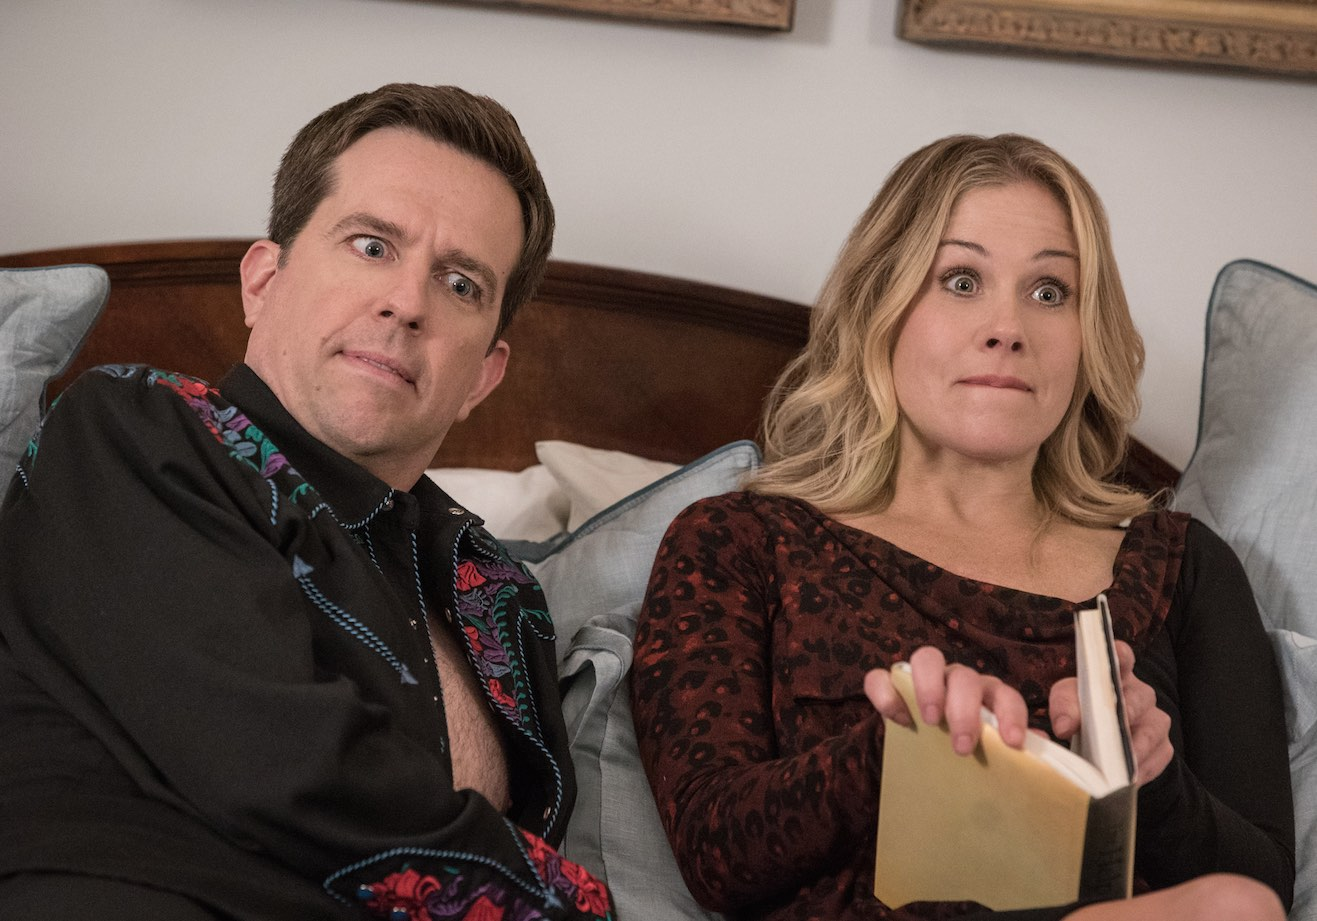 Ed Helms and Christina Applegate in Vacation